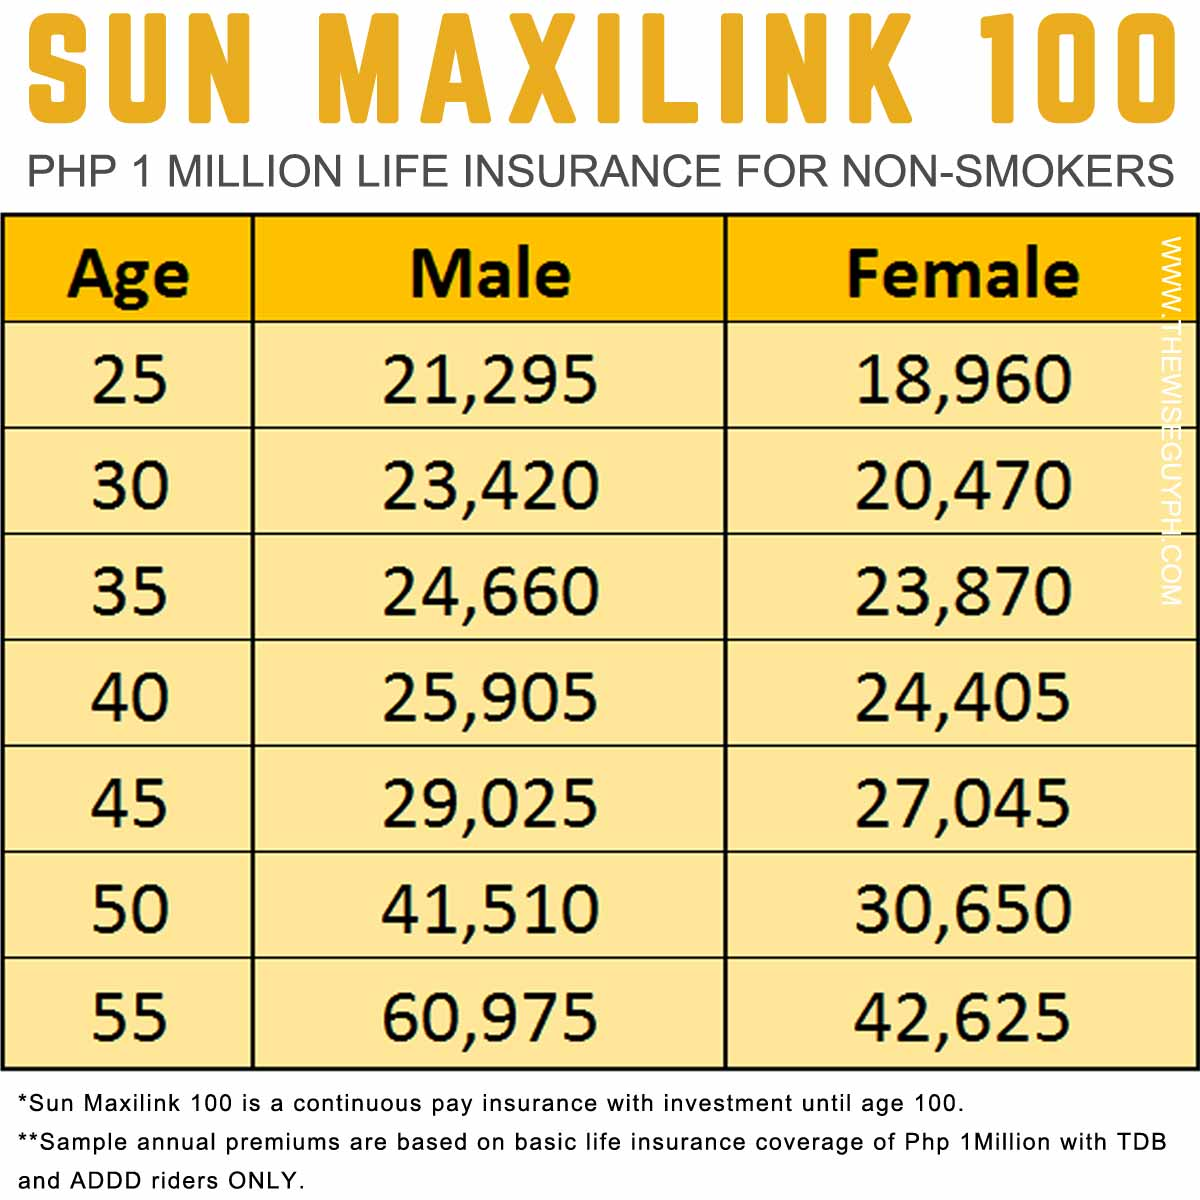 Sun Maxilink 100 Annual Premium Table